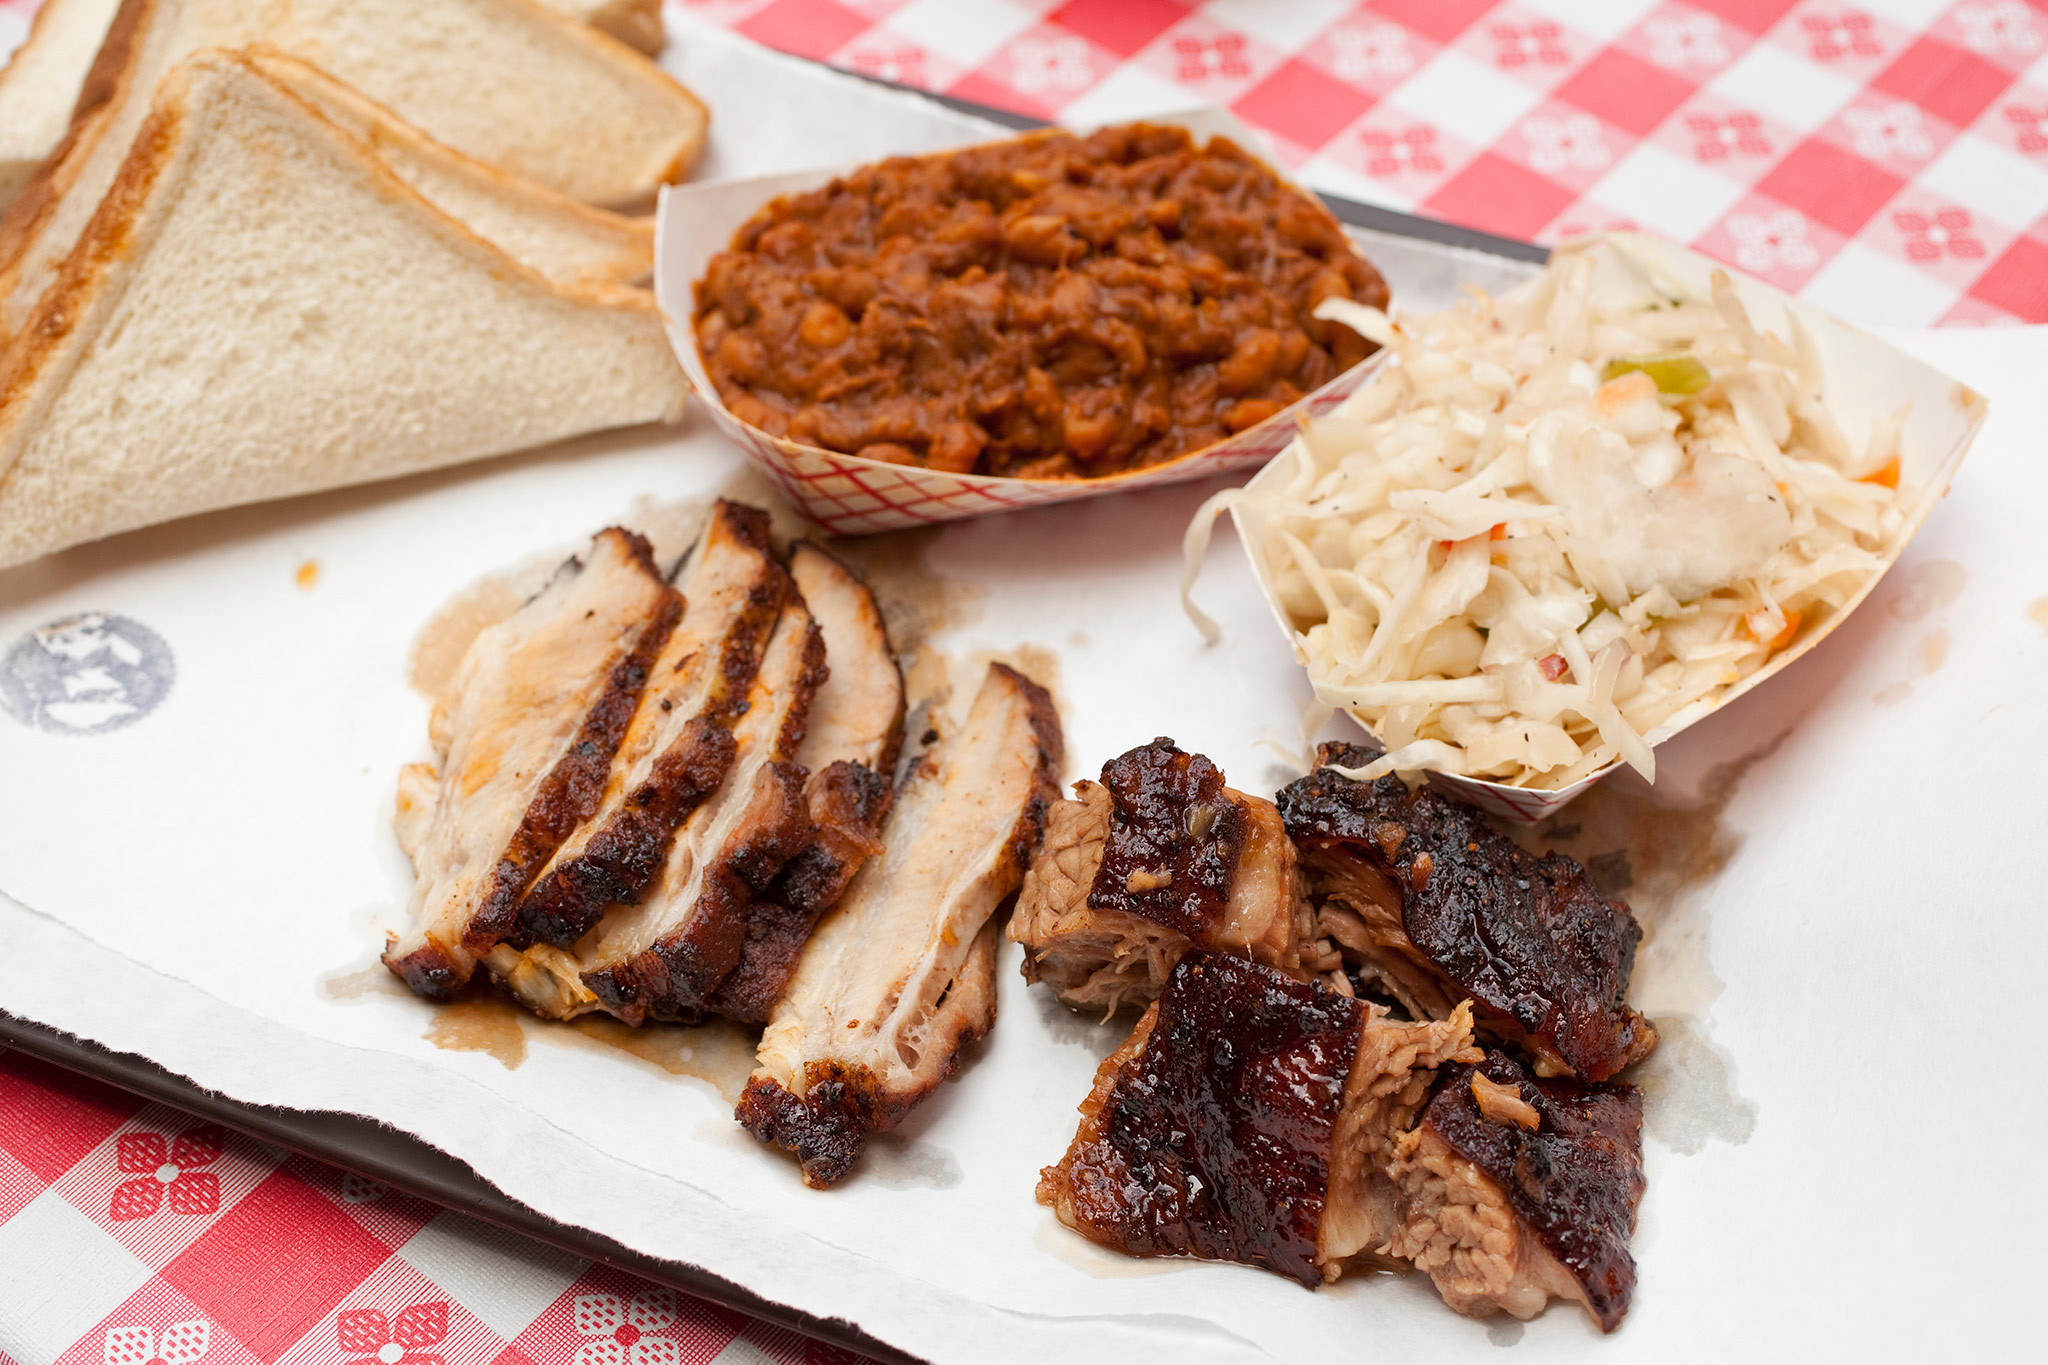 Barbeque platter at John Brown Smokehouse